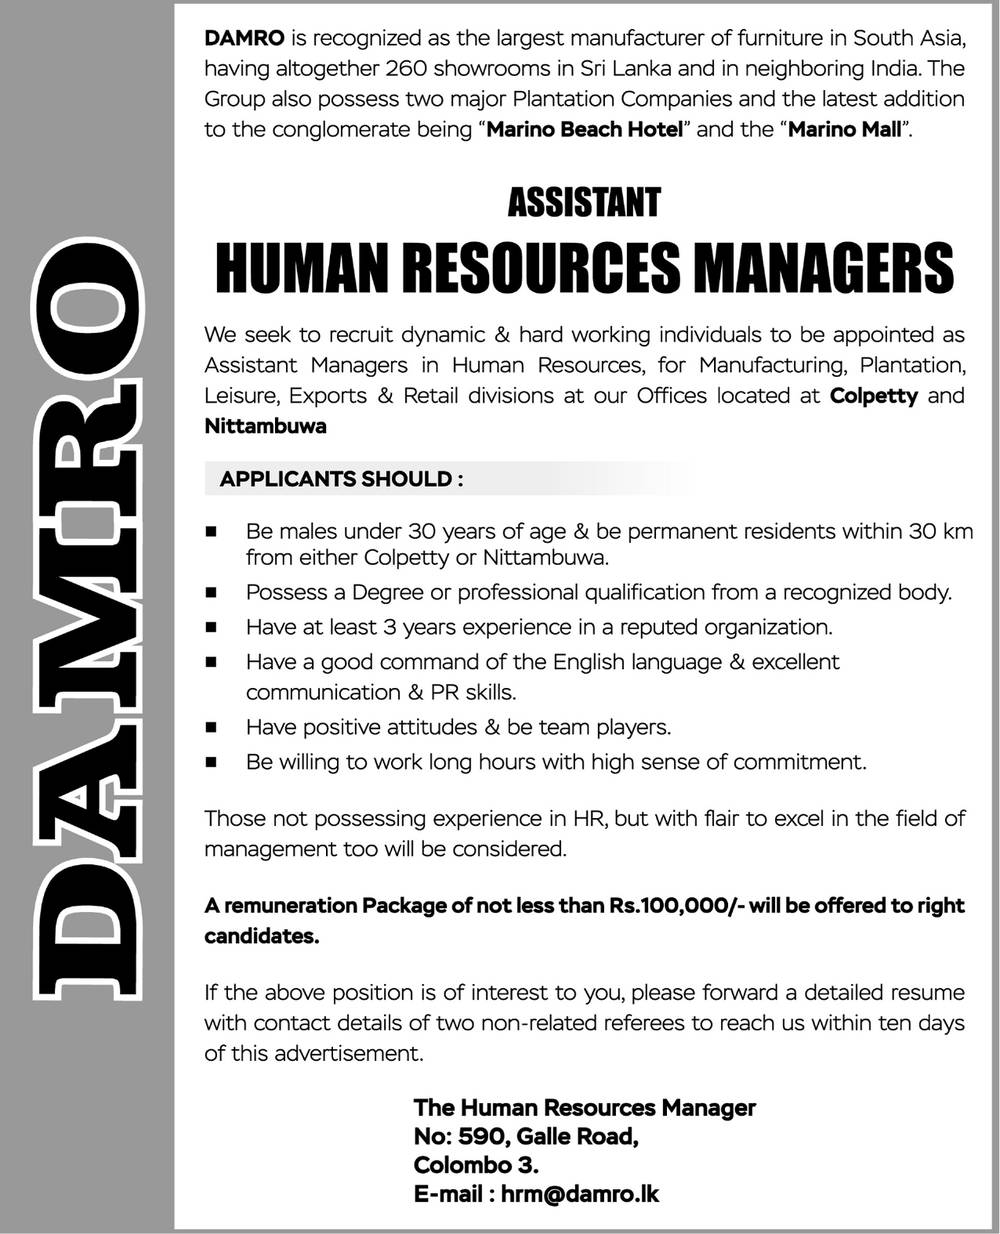 Assistant Human Resources Managers - Damro